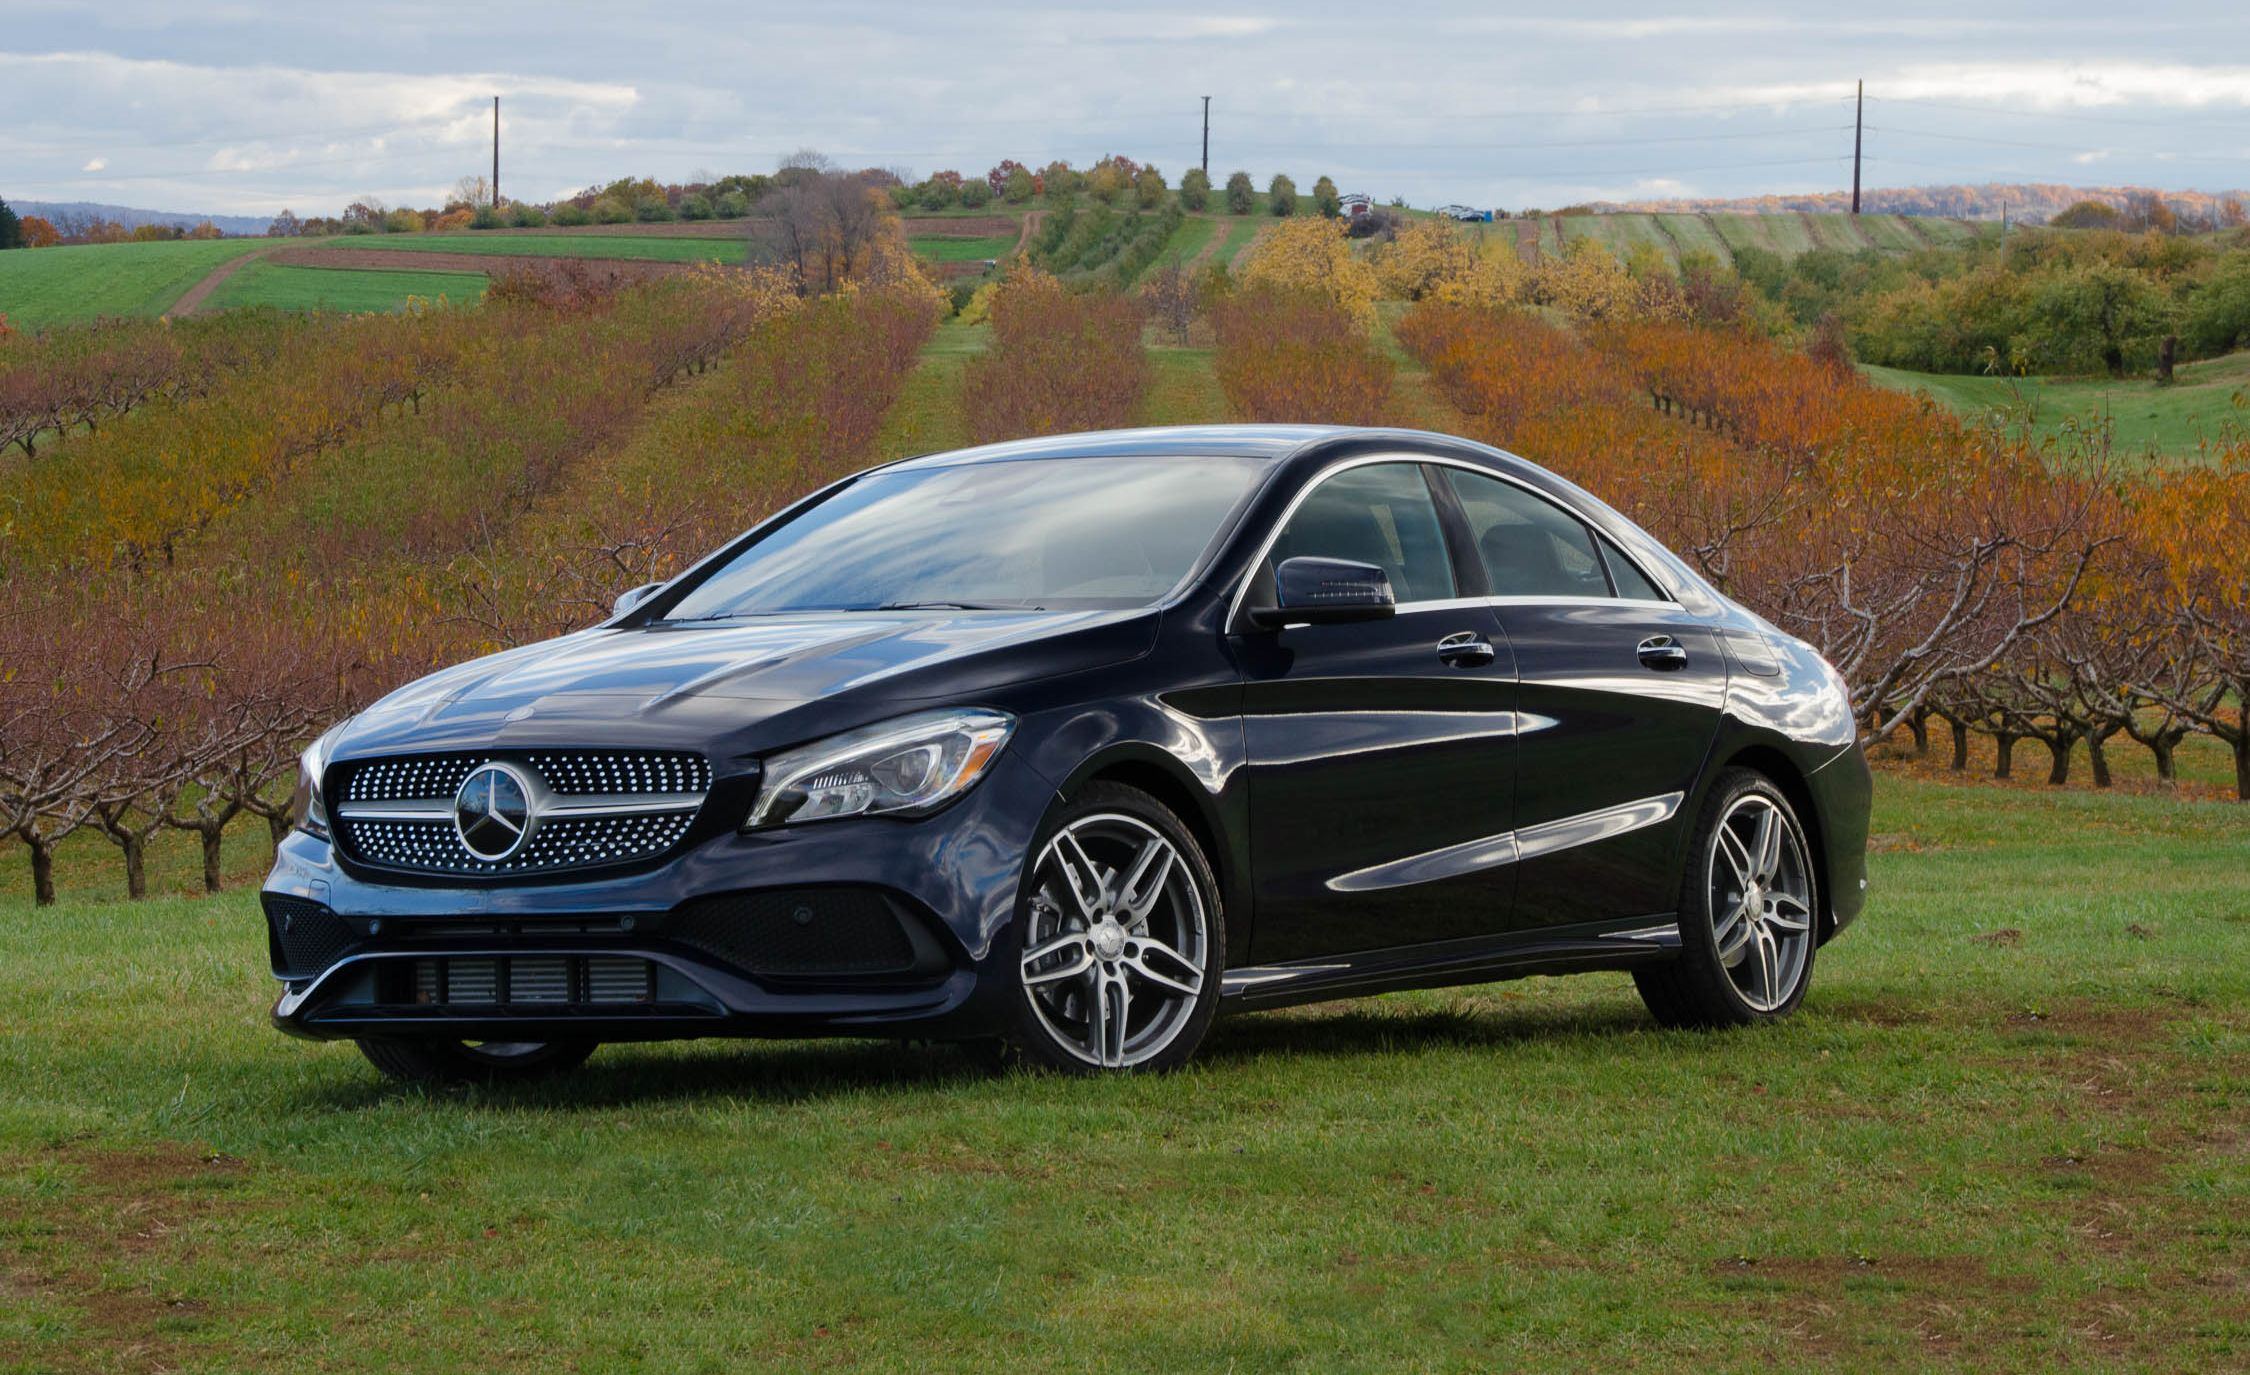 2020 mercedes benz cla class reviews mercedes benz cla class price photos and specs car. Black Bedroom Furniture Sets. Home Design Ideas